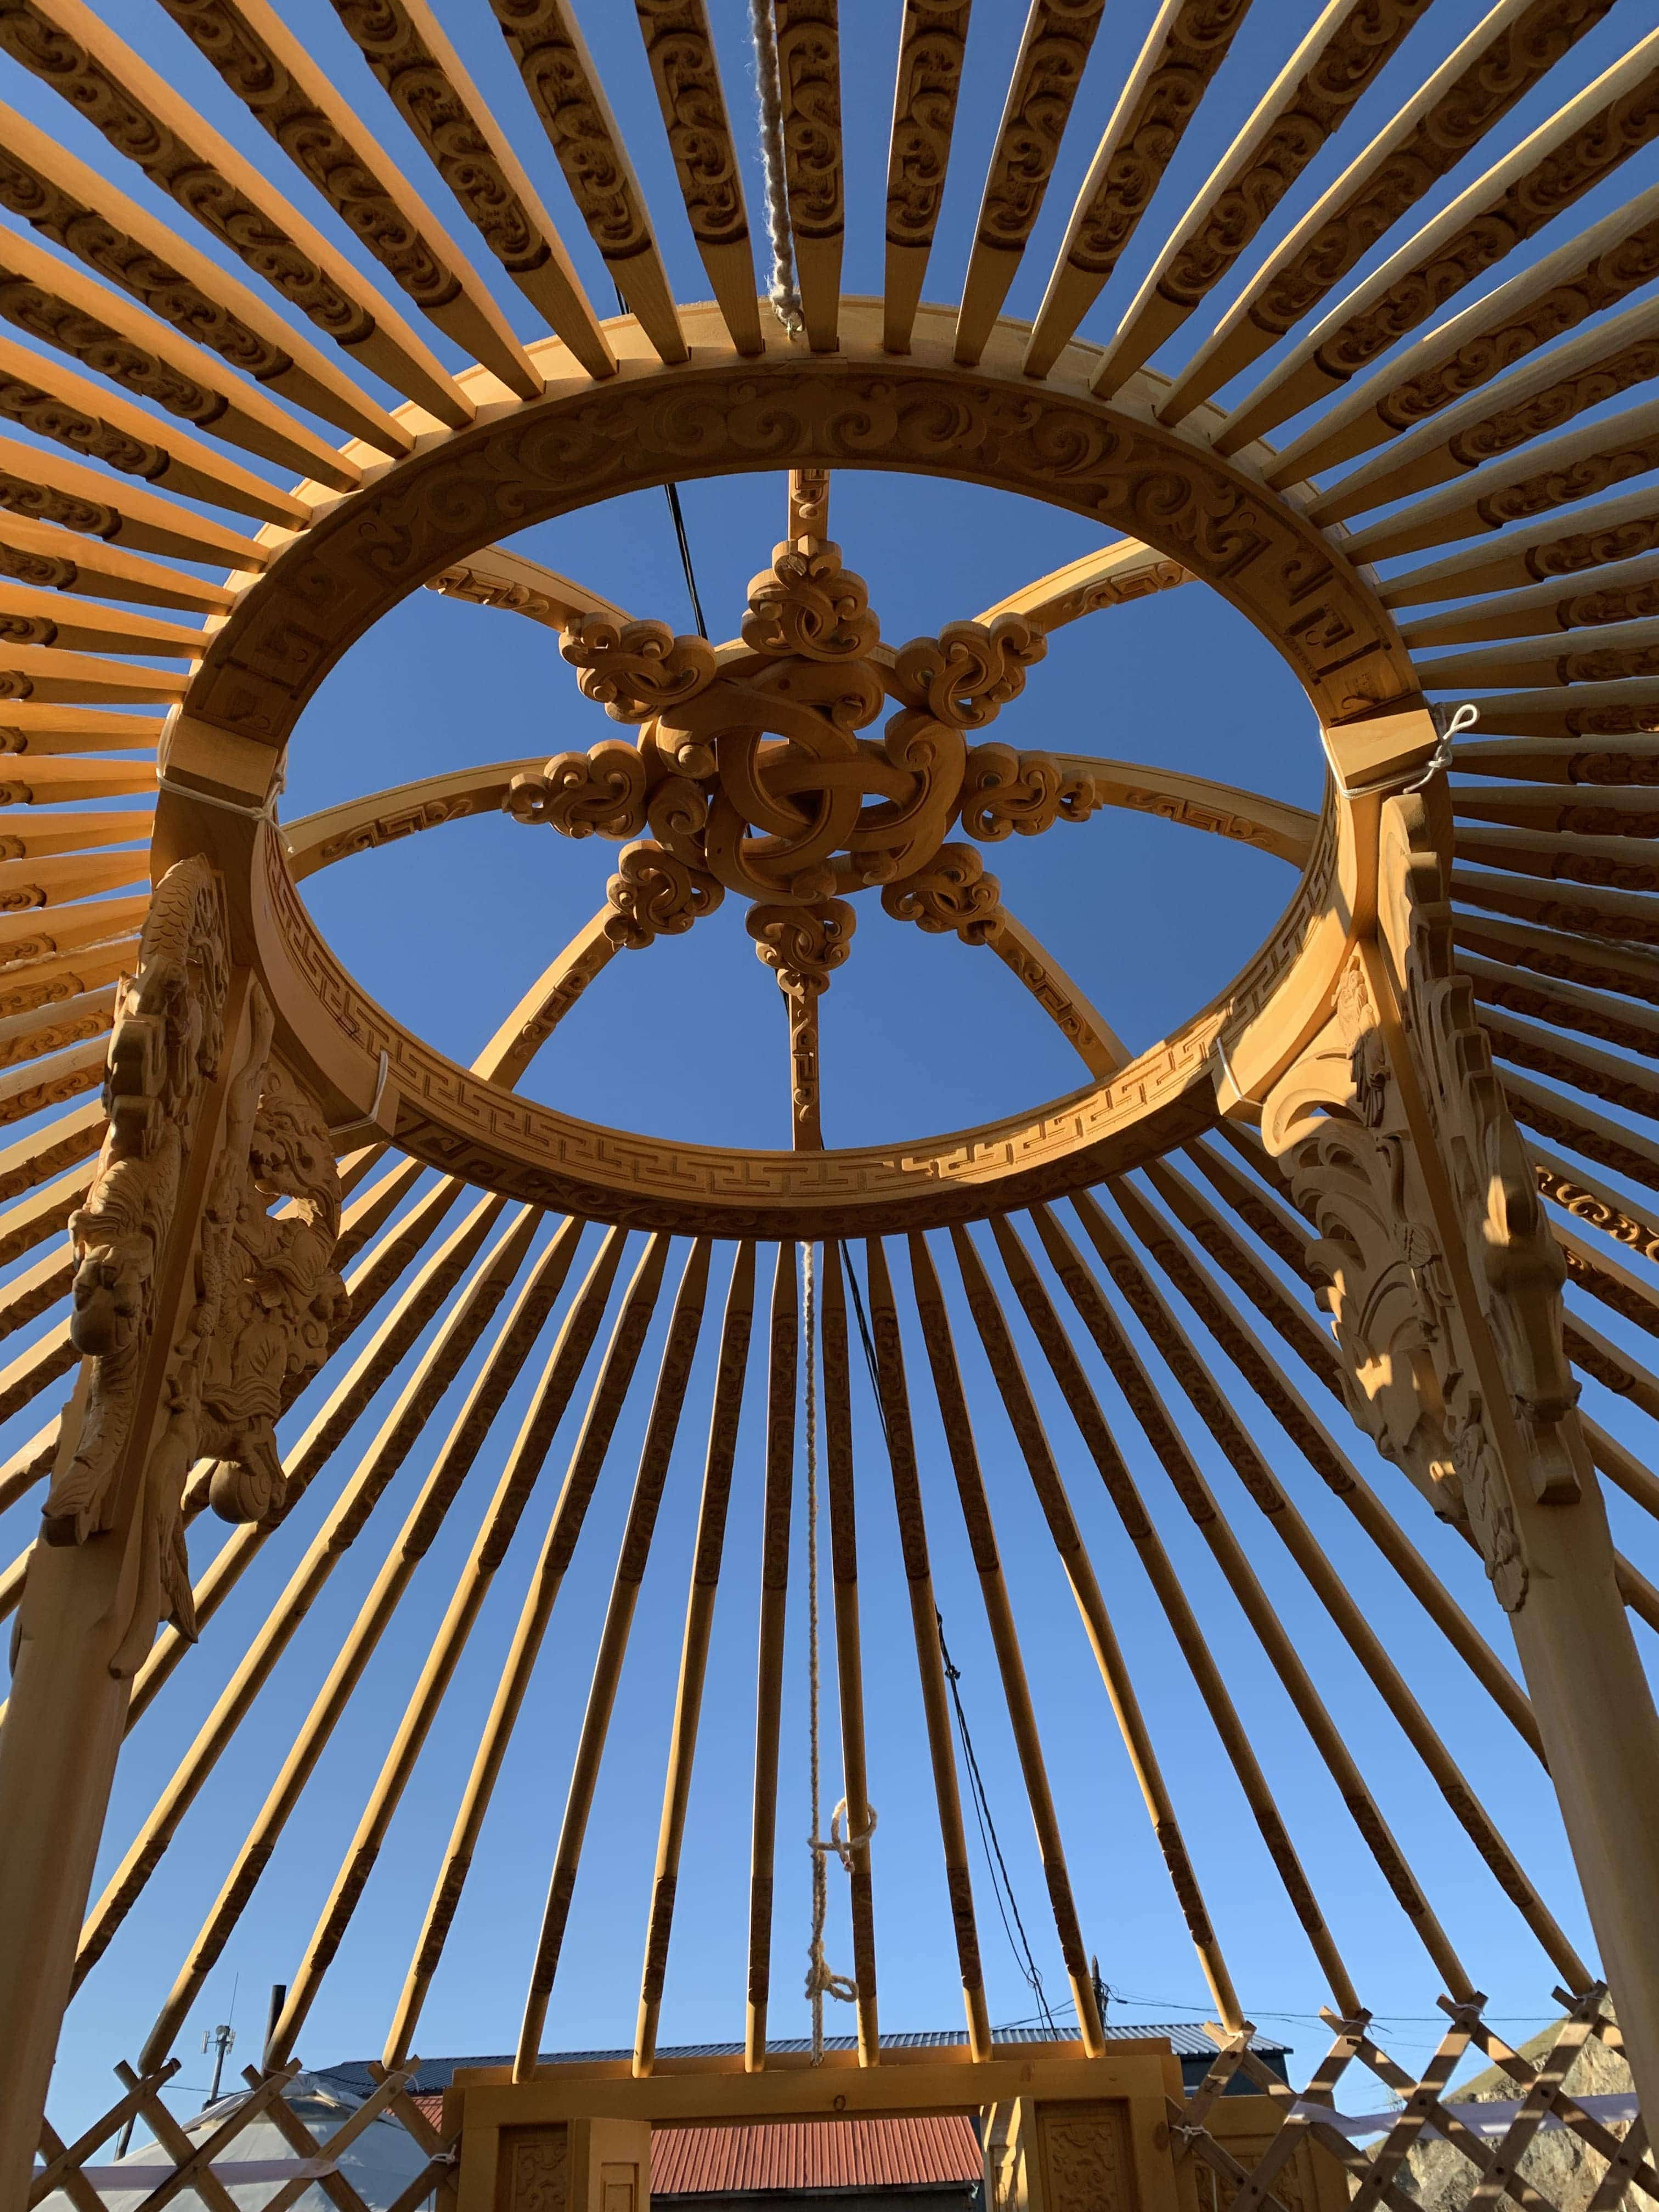 A beautiful and intricate roof in a Yurt